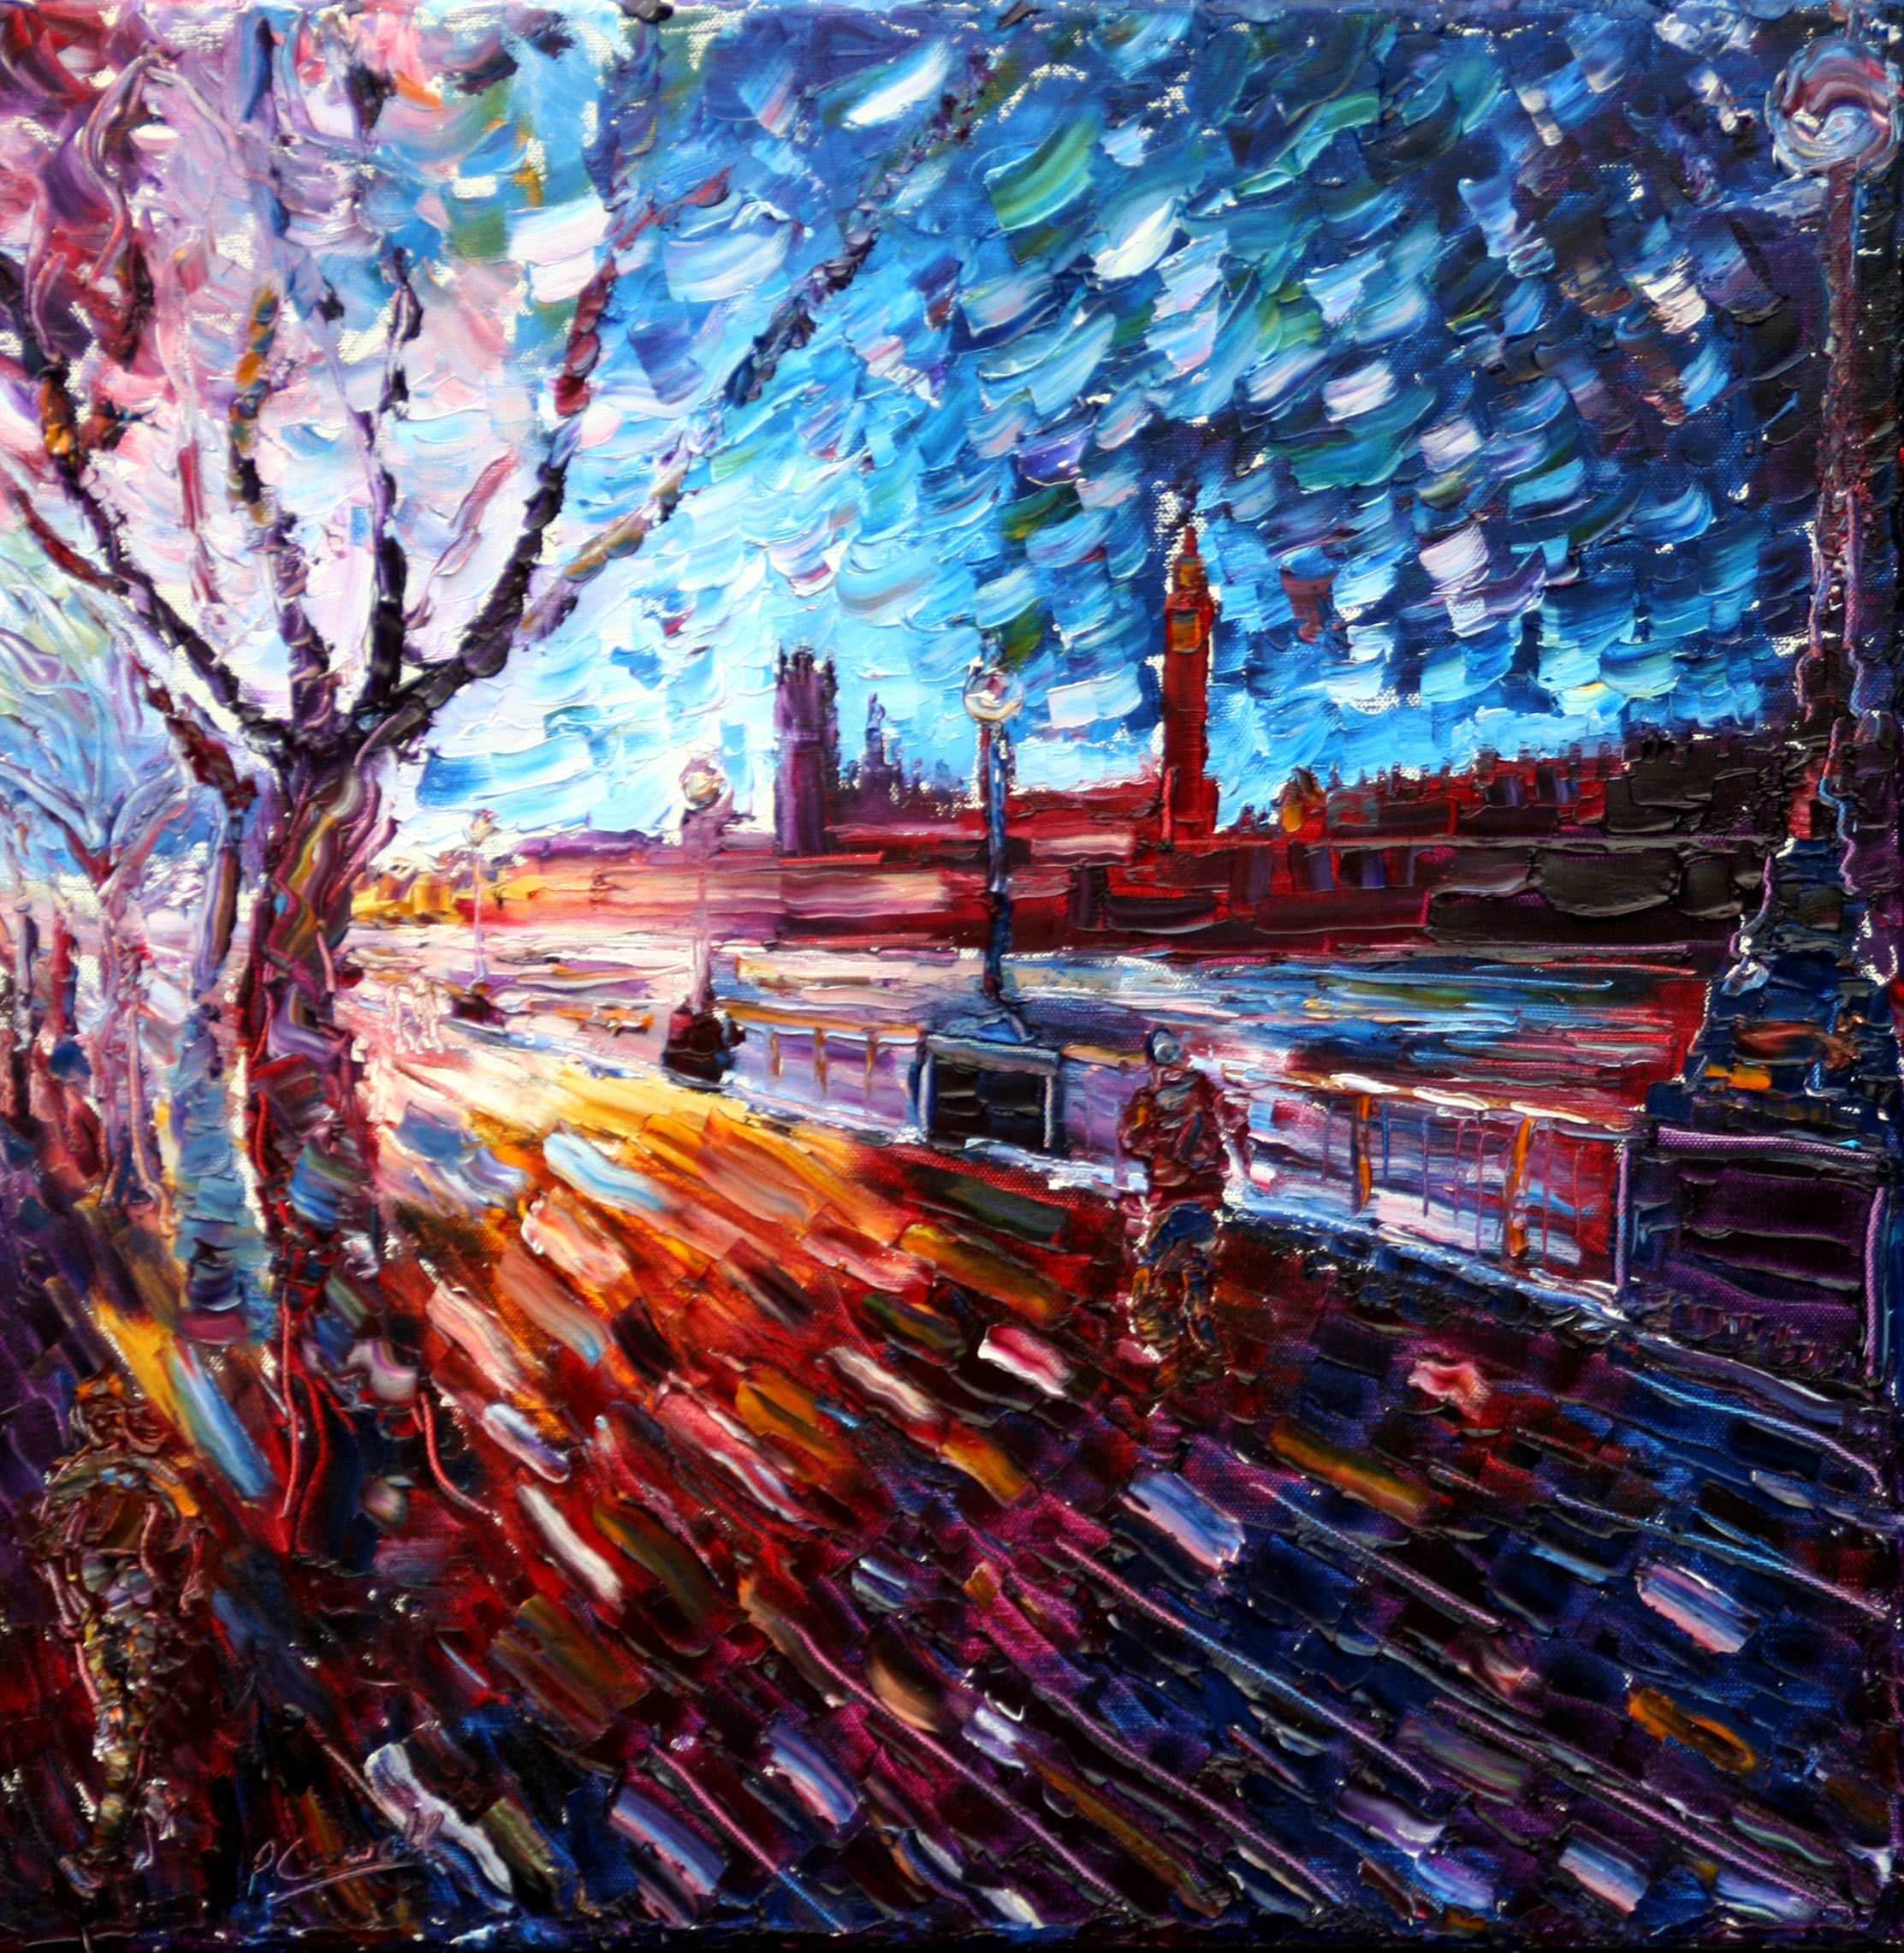 London Oil Painting For Sale Of Westminster Bridge,Big Ben